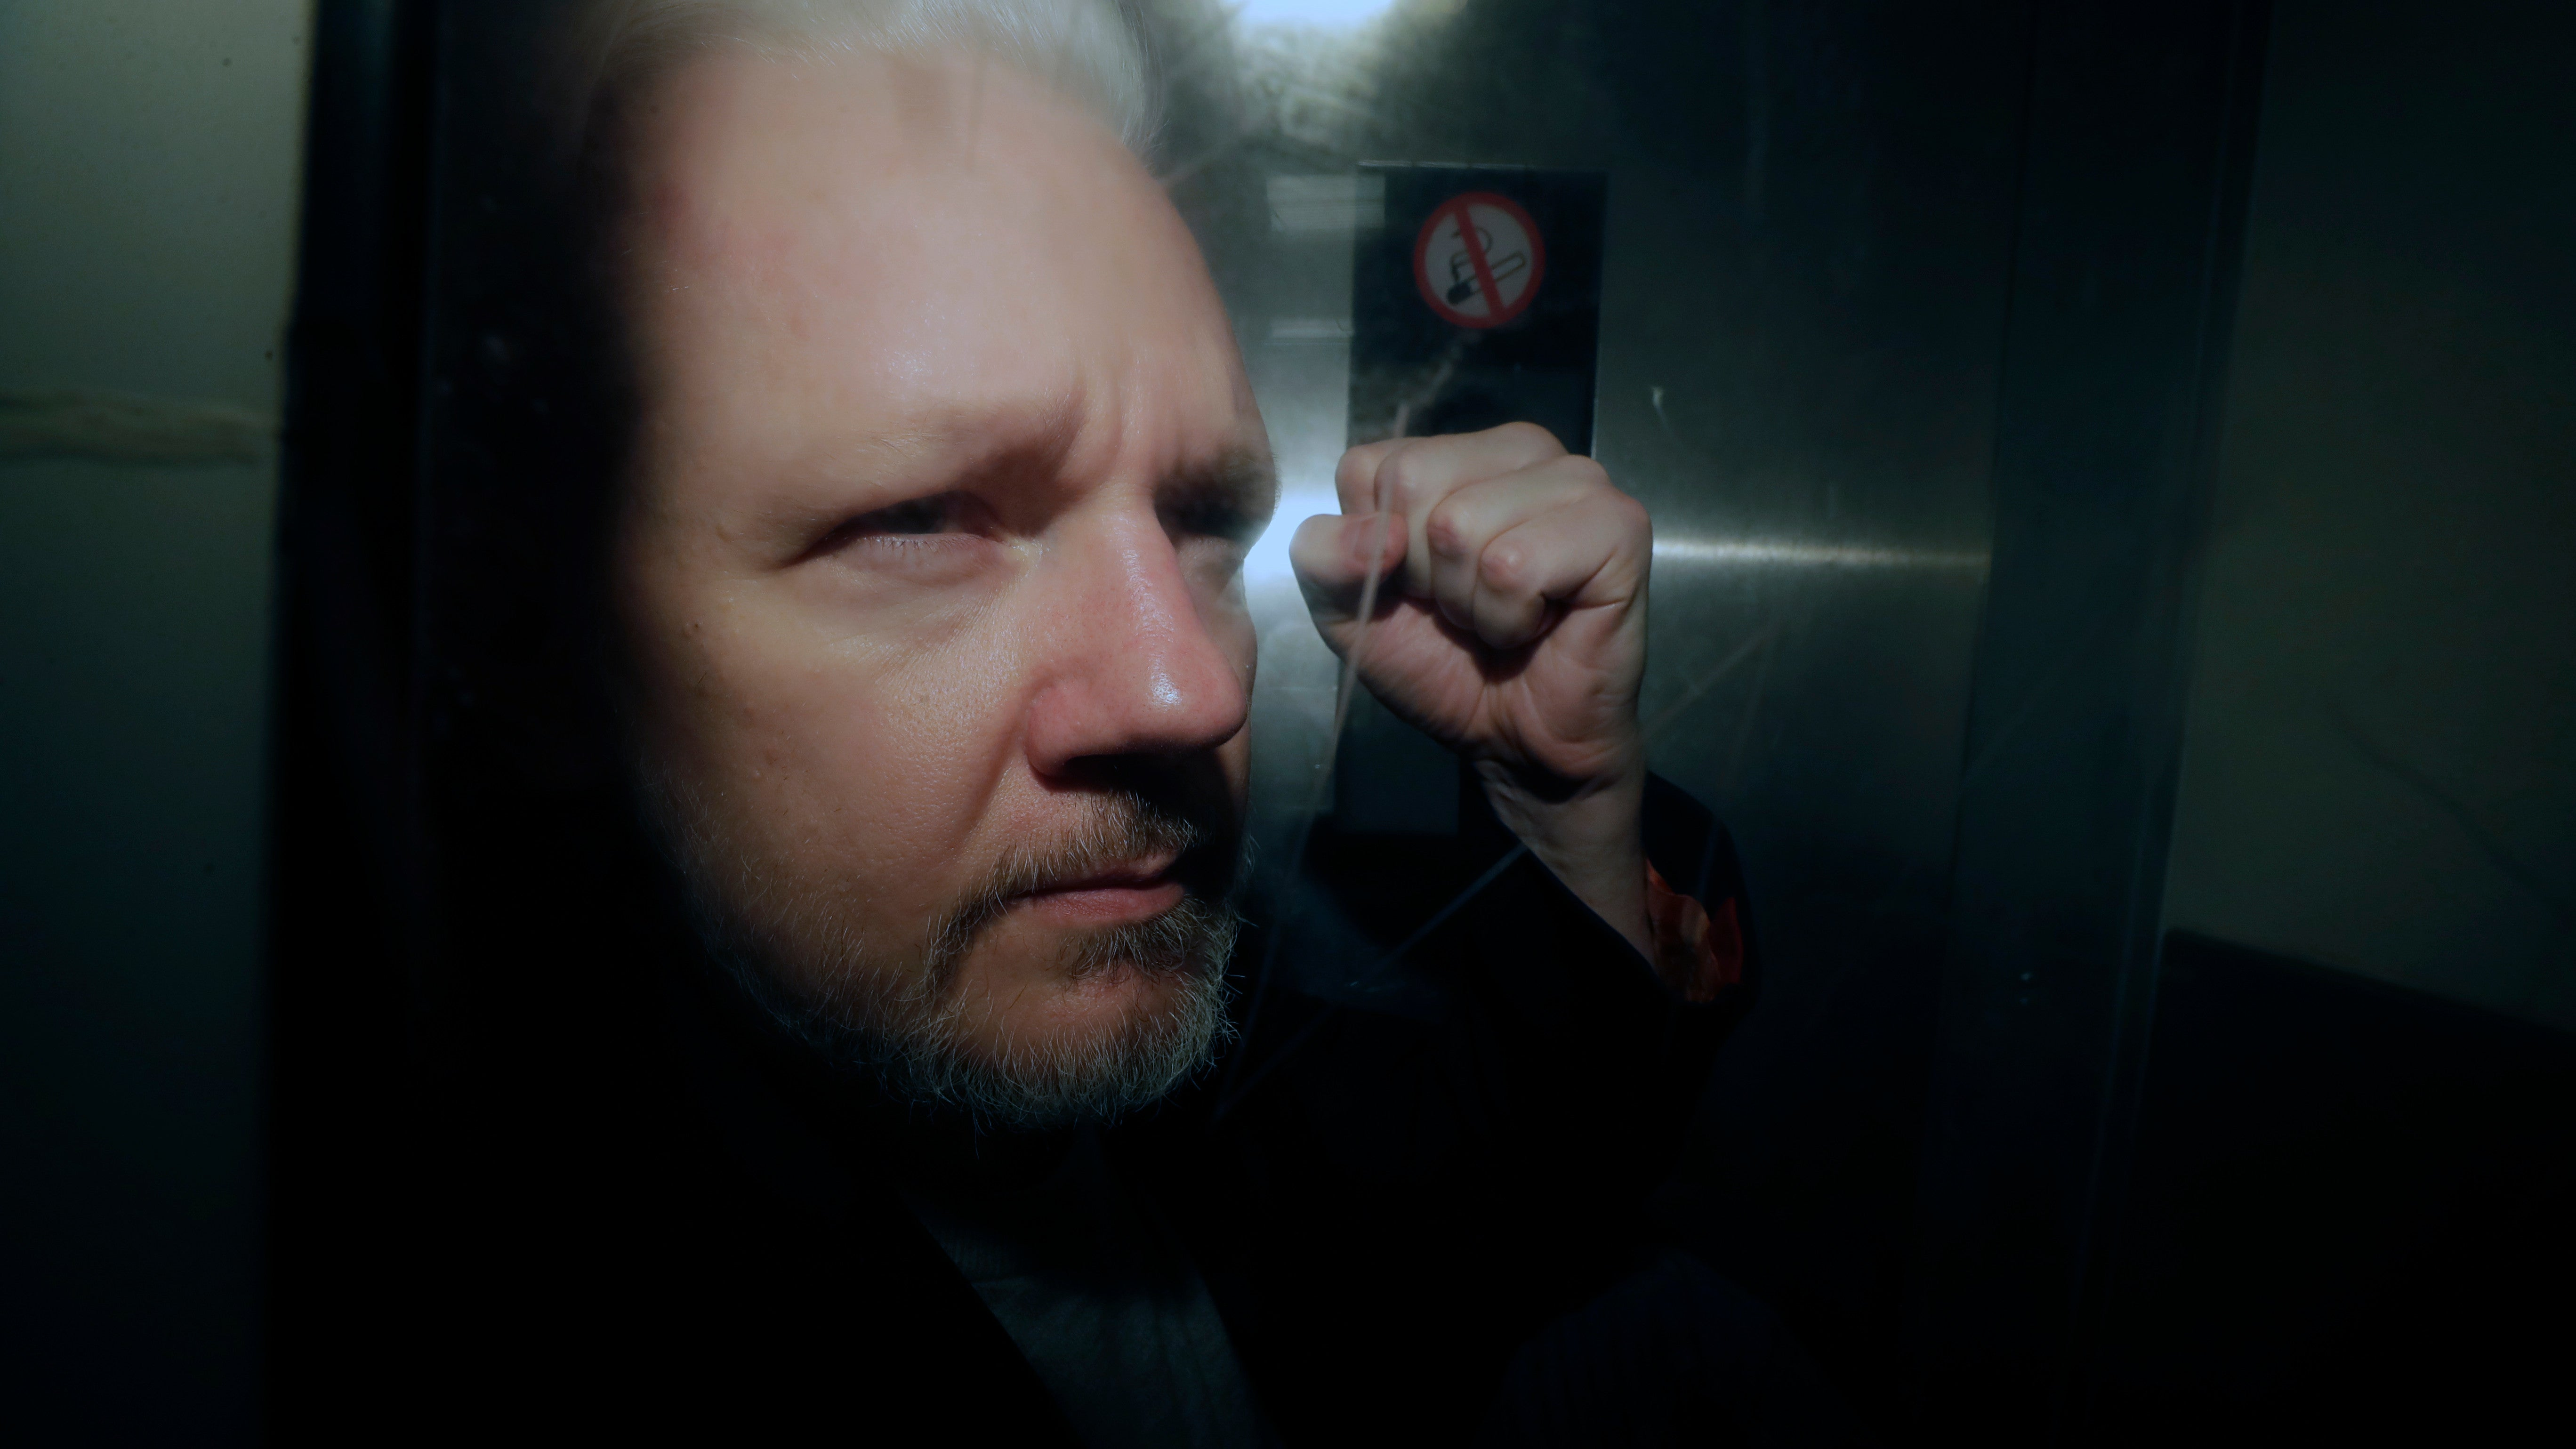 Julian Assange's Electronics Reportedly Shared With U.S. Prosecutors, Despite Pending Extradition Hearing